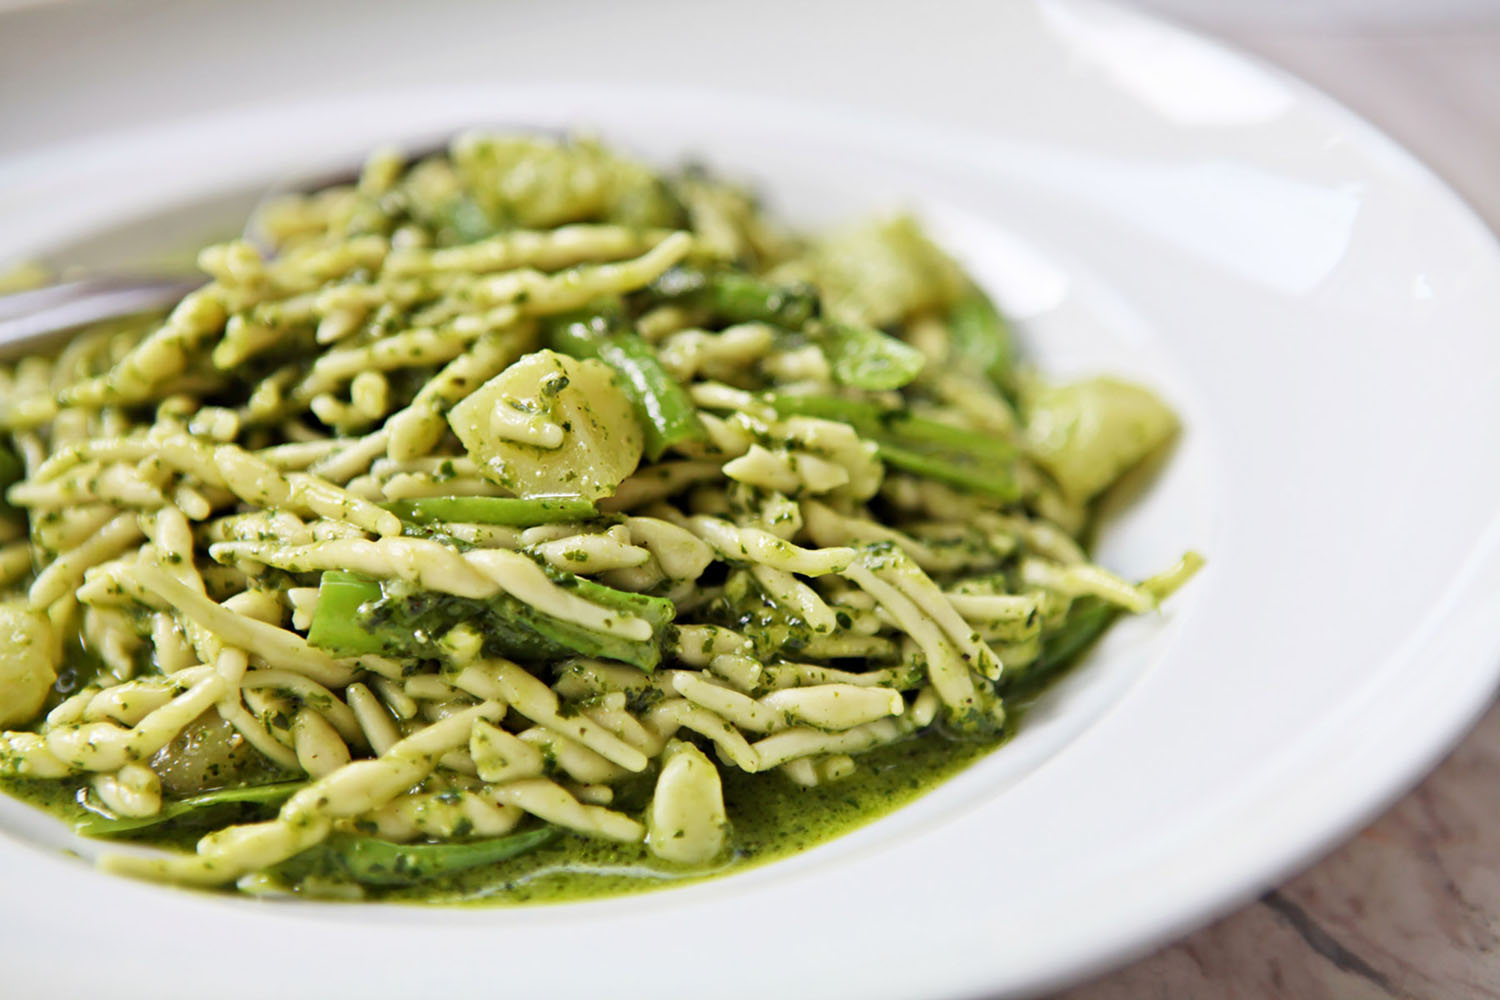 Basil pesto is served with Trofie pasta in Cinque Terre.